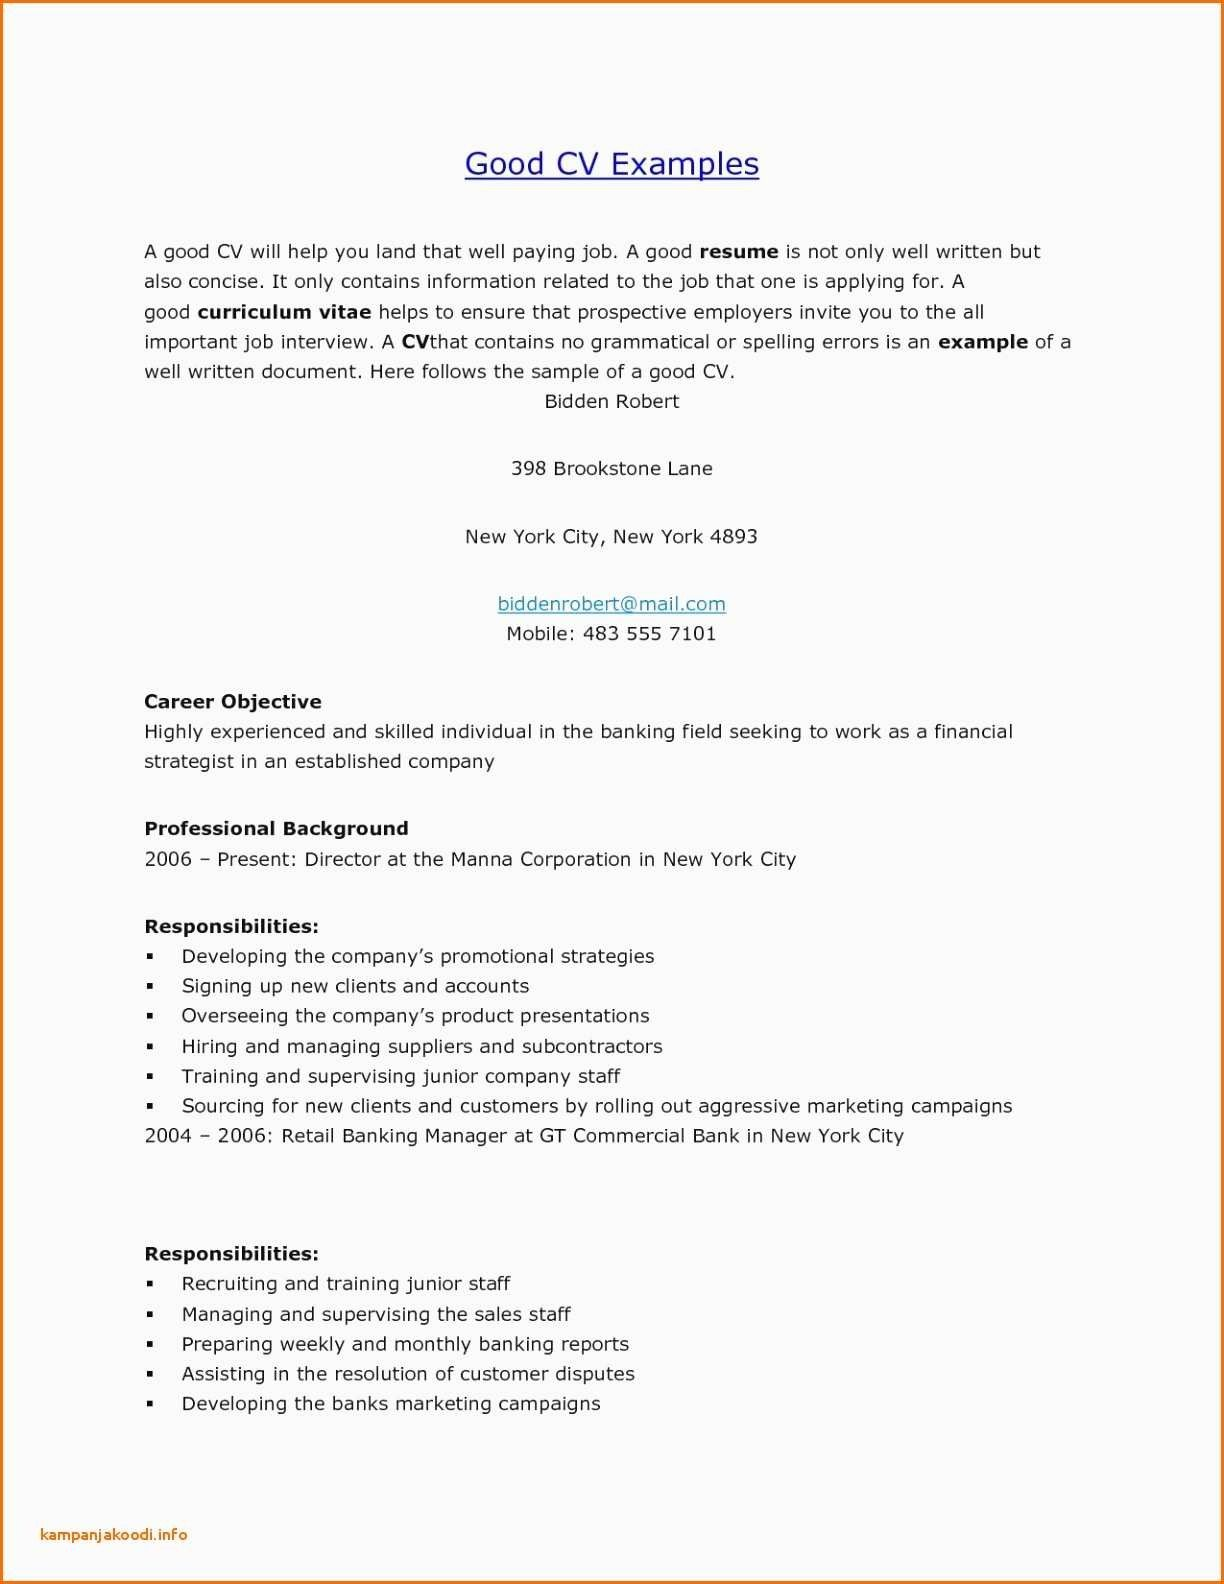 download best of email cover letter sample for job career objective structural engineer resume primary school teacher staff nurse cv template